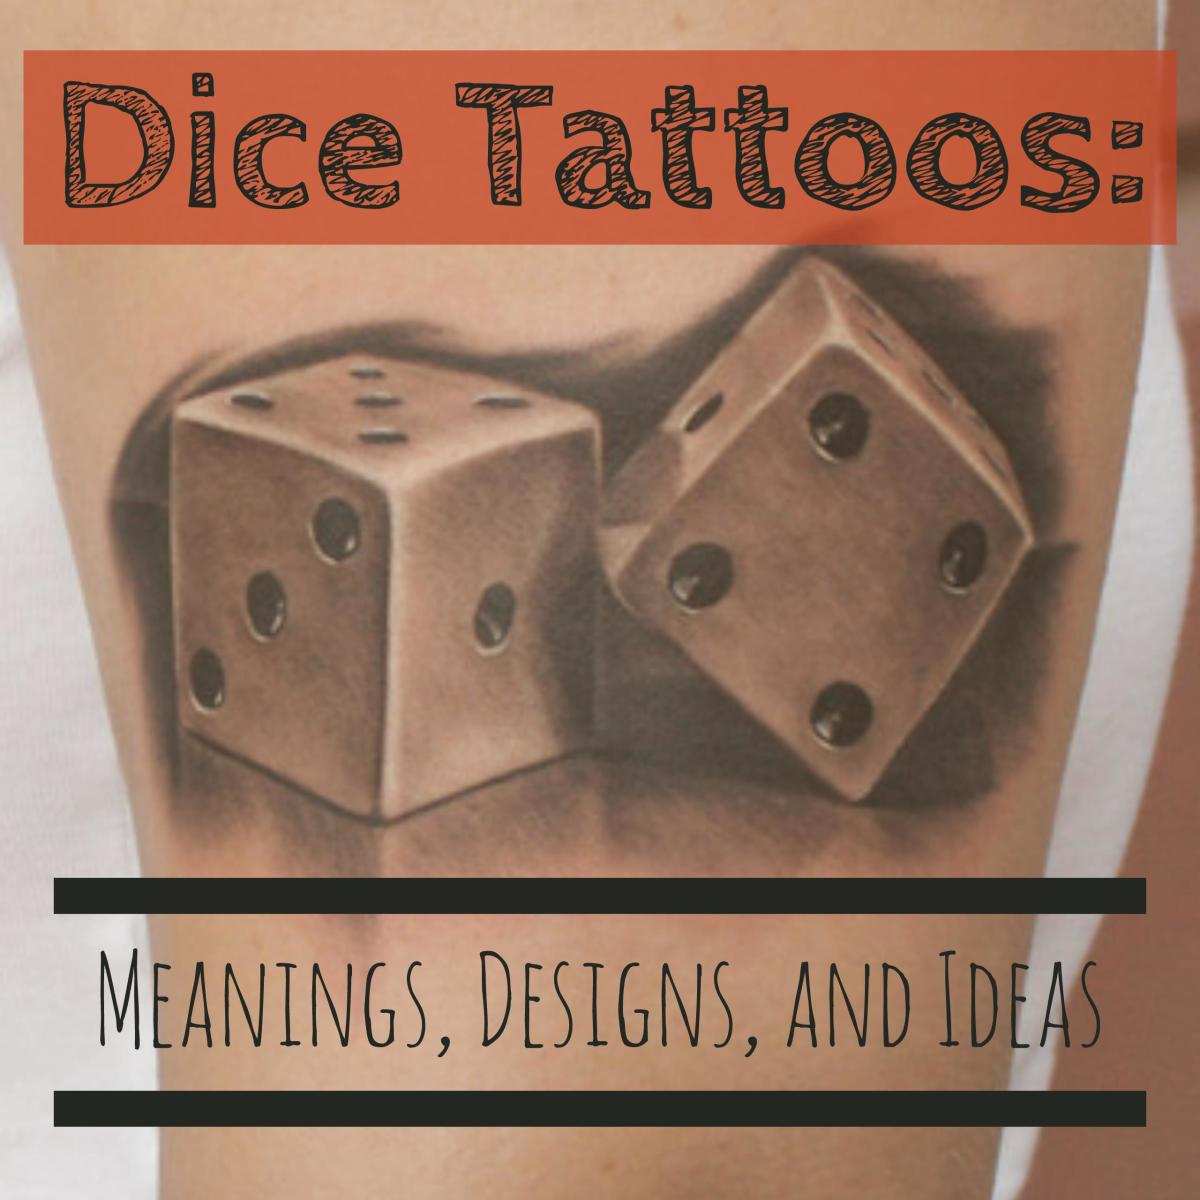 Dice Tattoos: Meanings, Designs, and Ideas